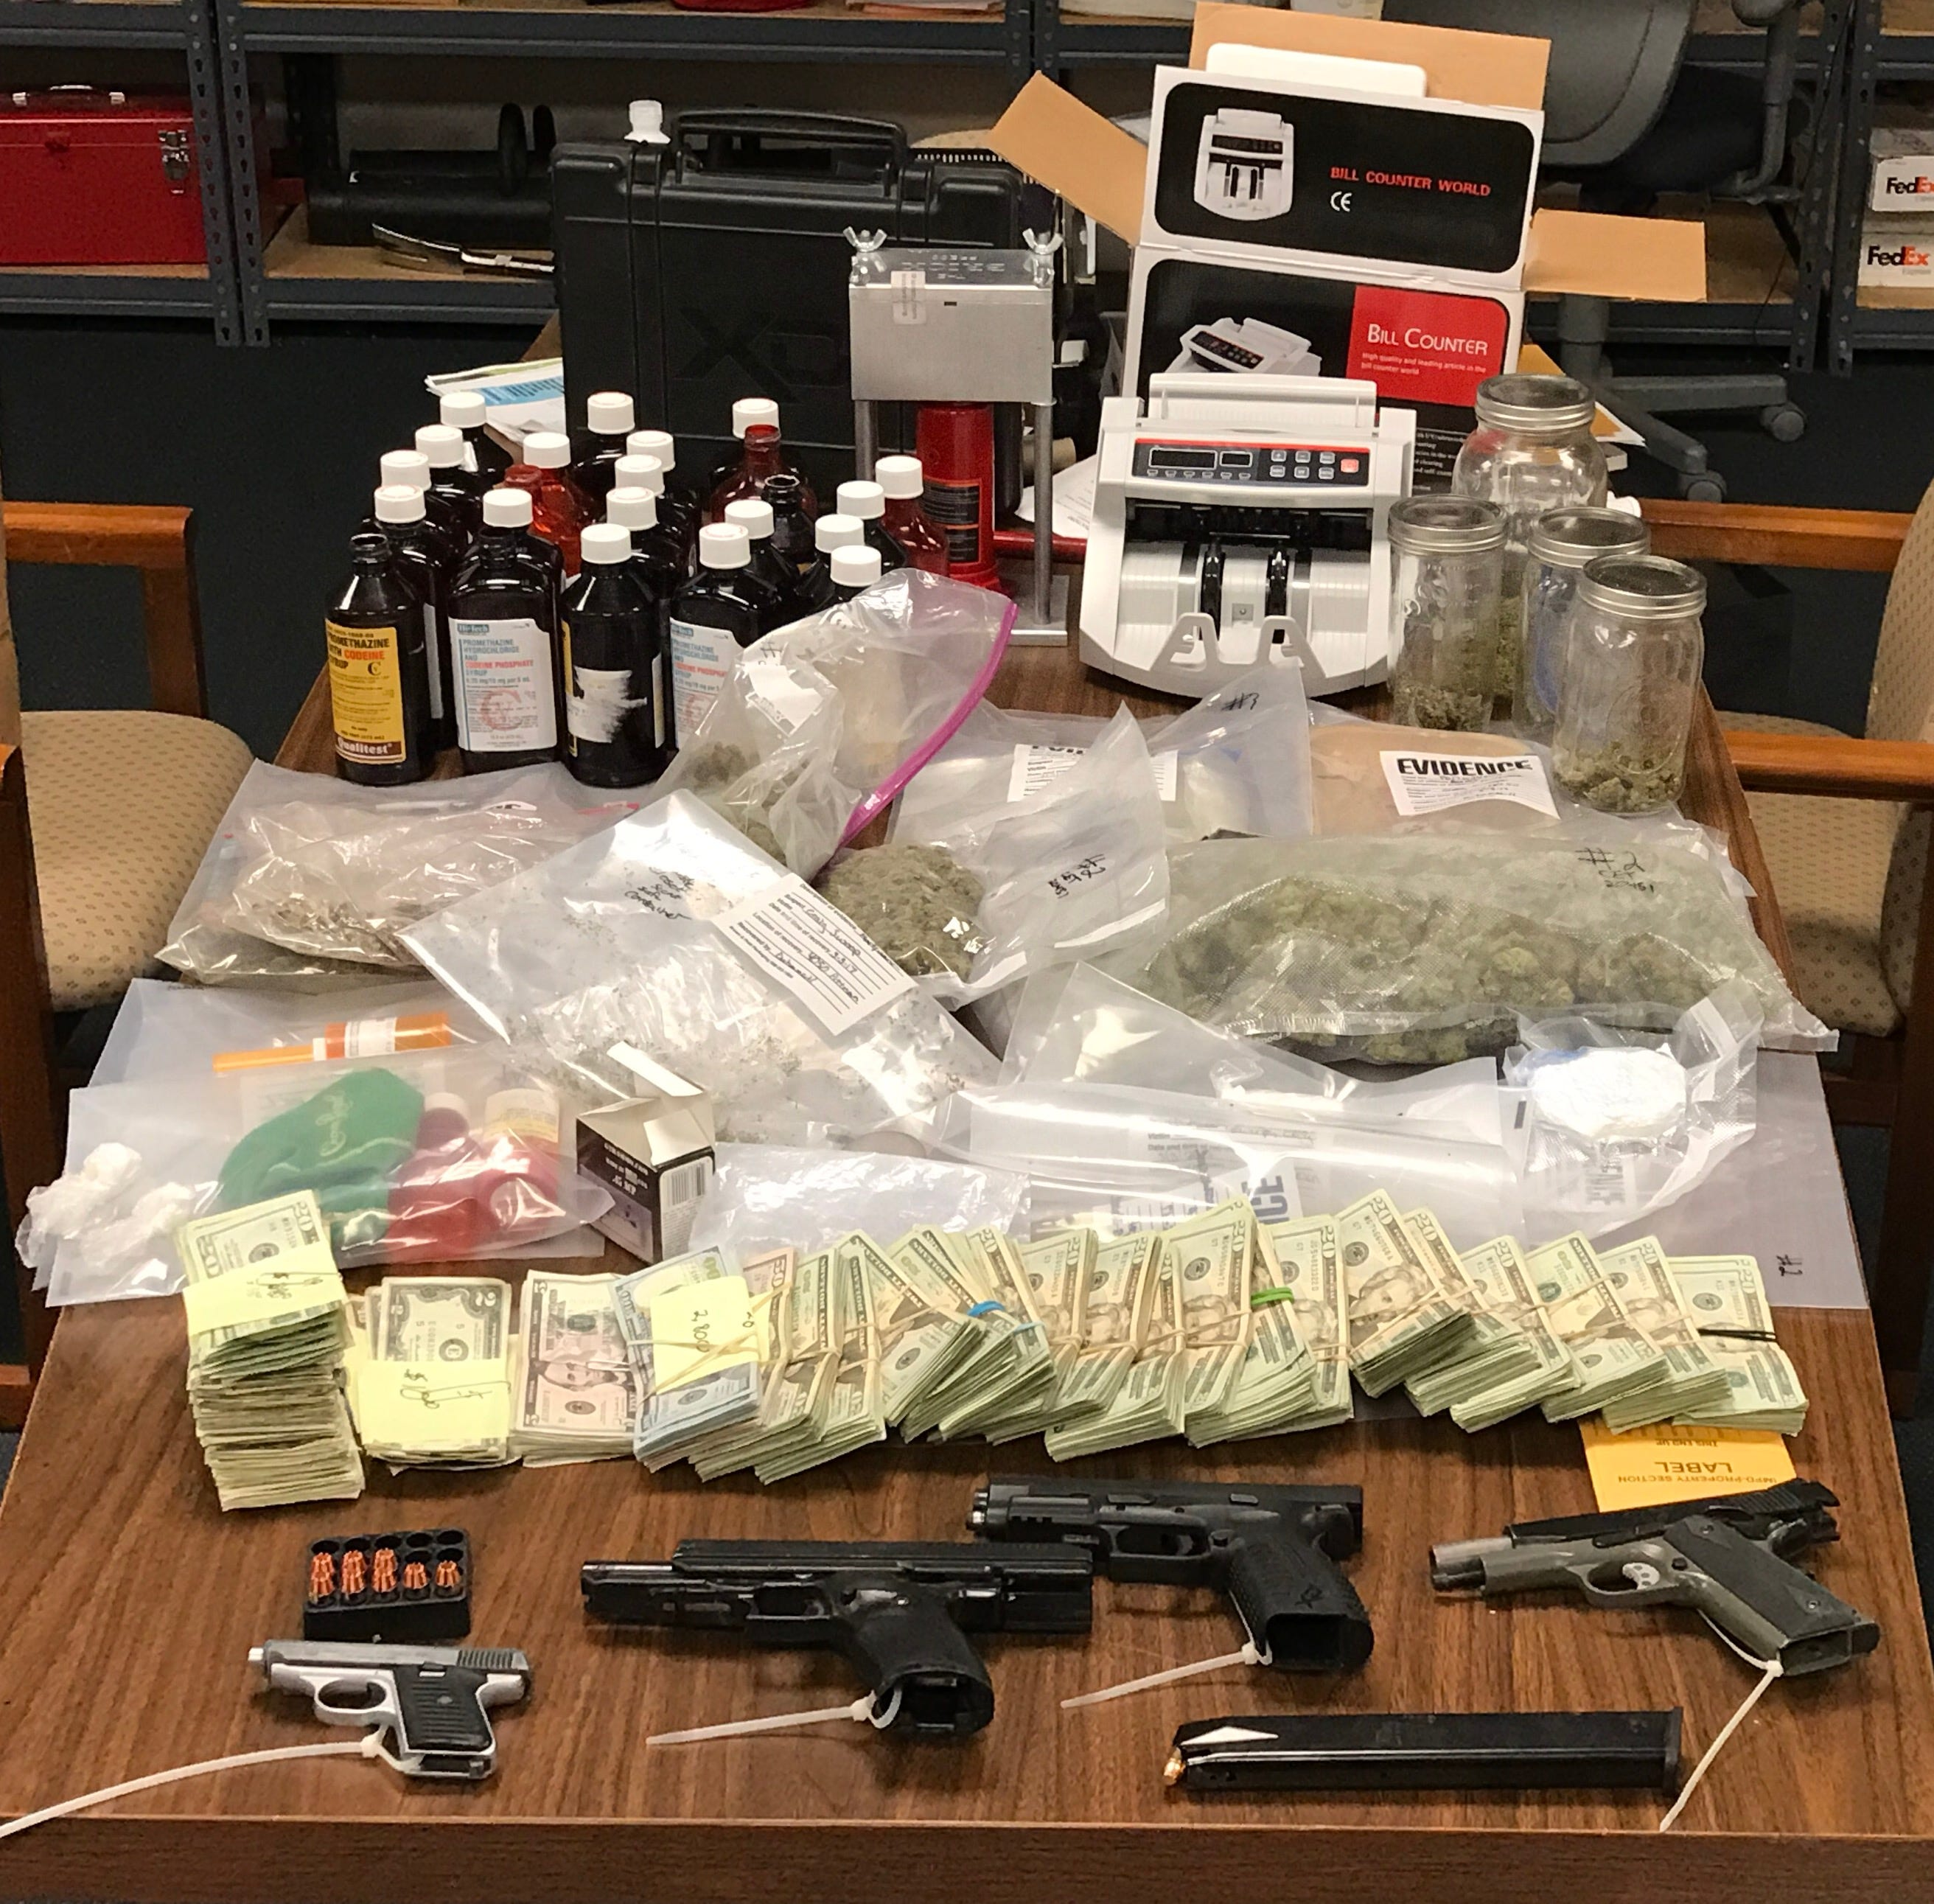 Police find assortment of drugs, handguns in house search